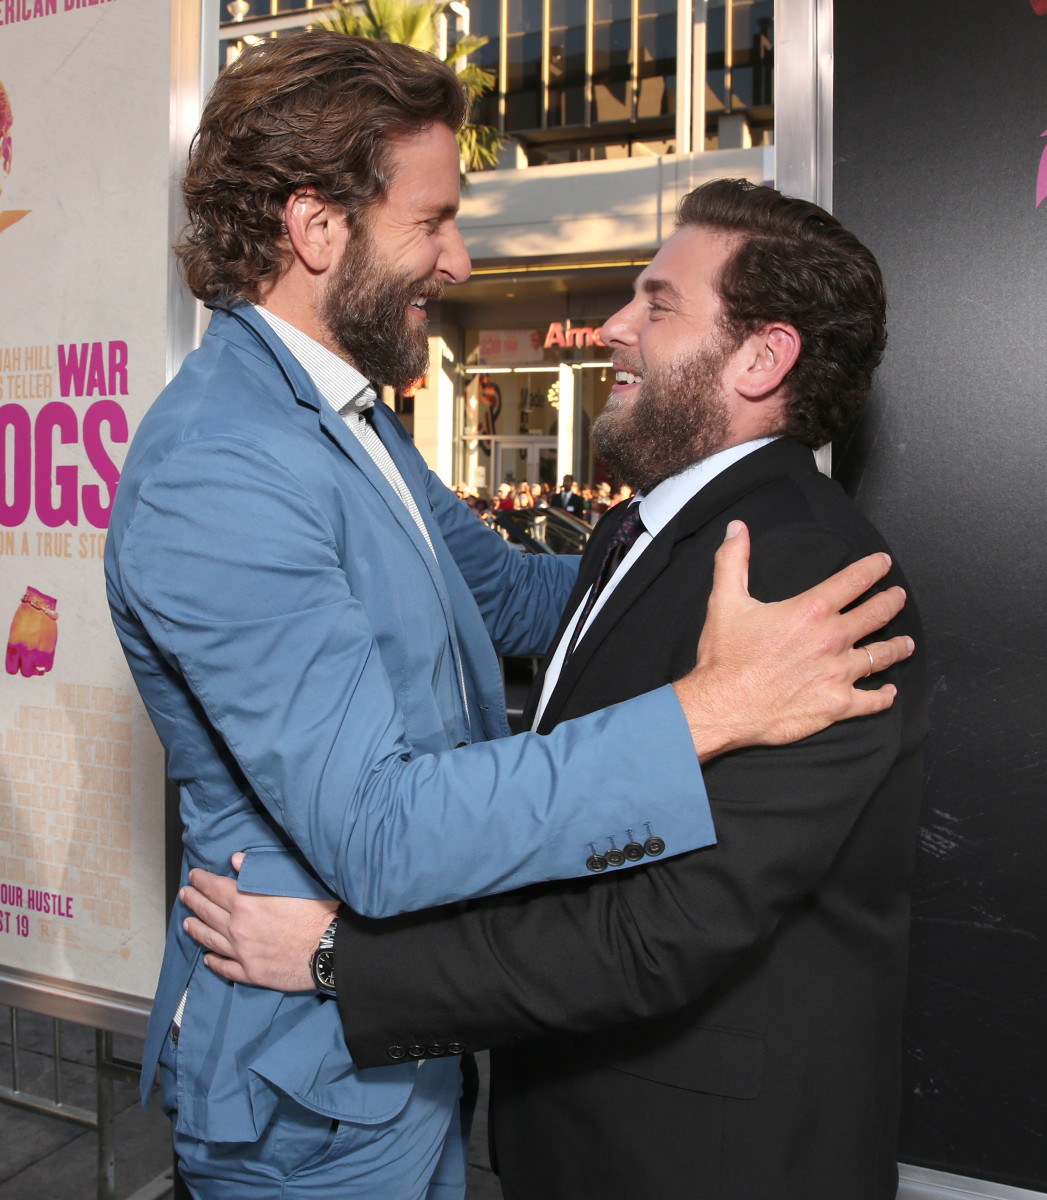 Bradley Cooper and Jonah Hill having so much fun in beards and suits. Photo: Todd Williamson/Getty Images